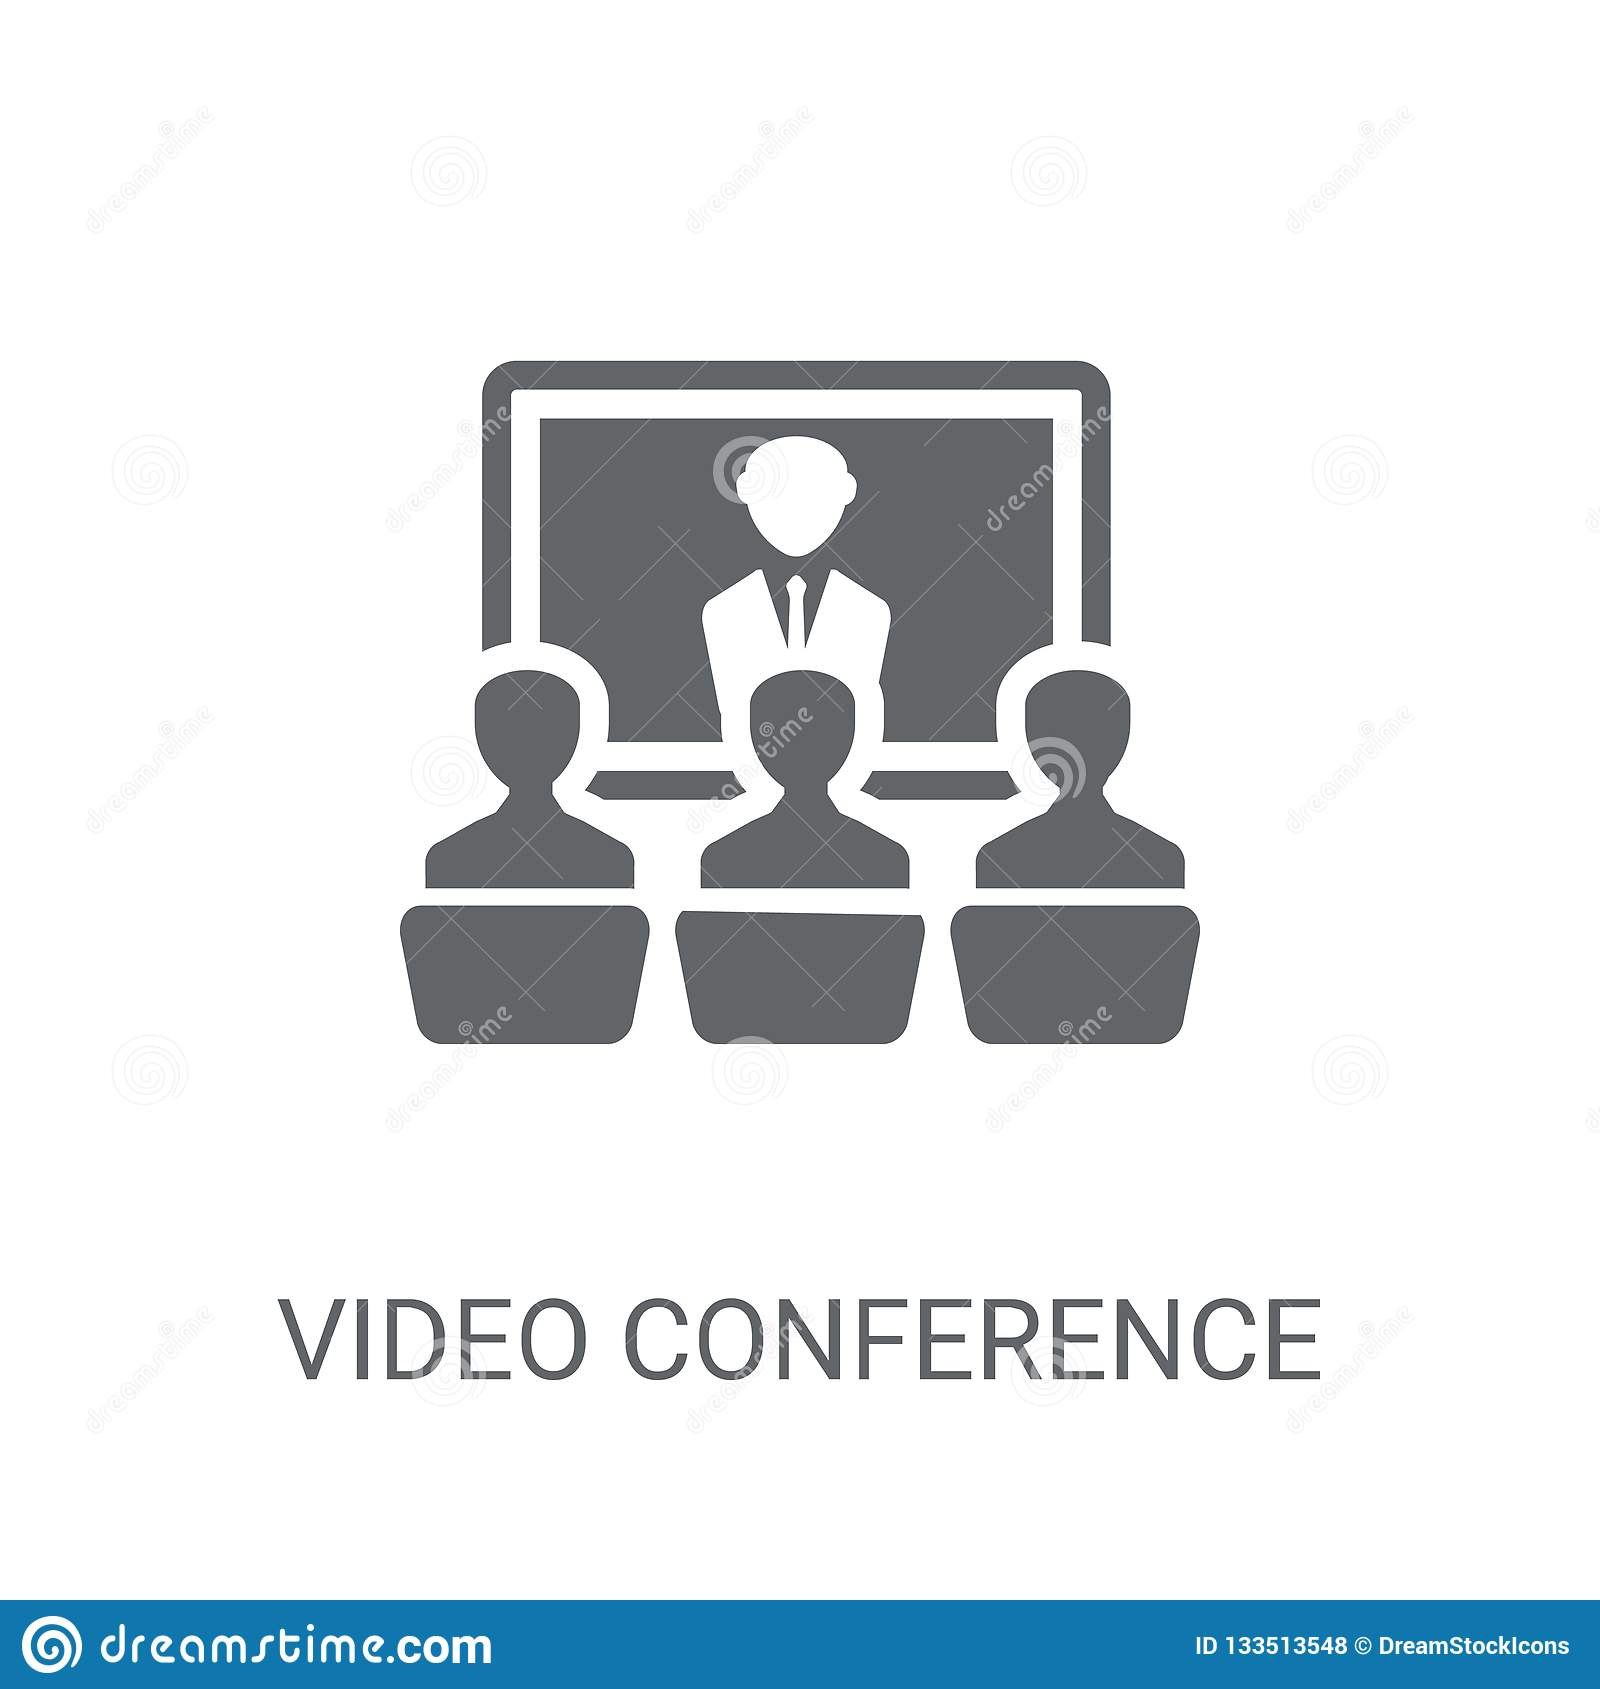 Video conference icon. Trendy Video conference logo concept on w